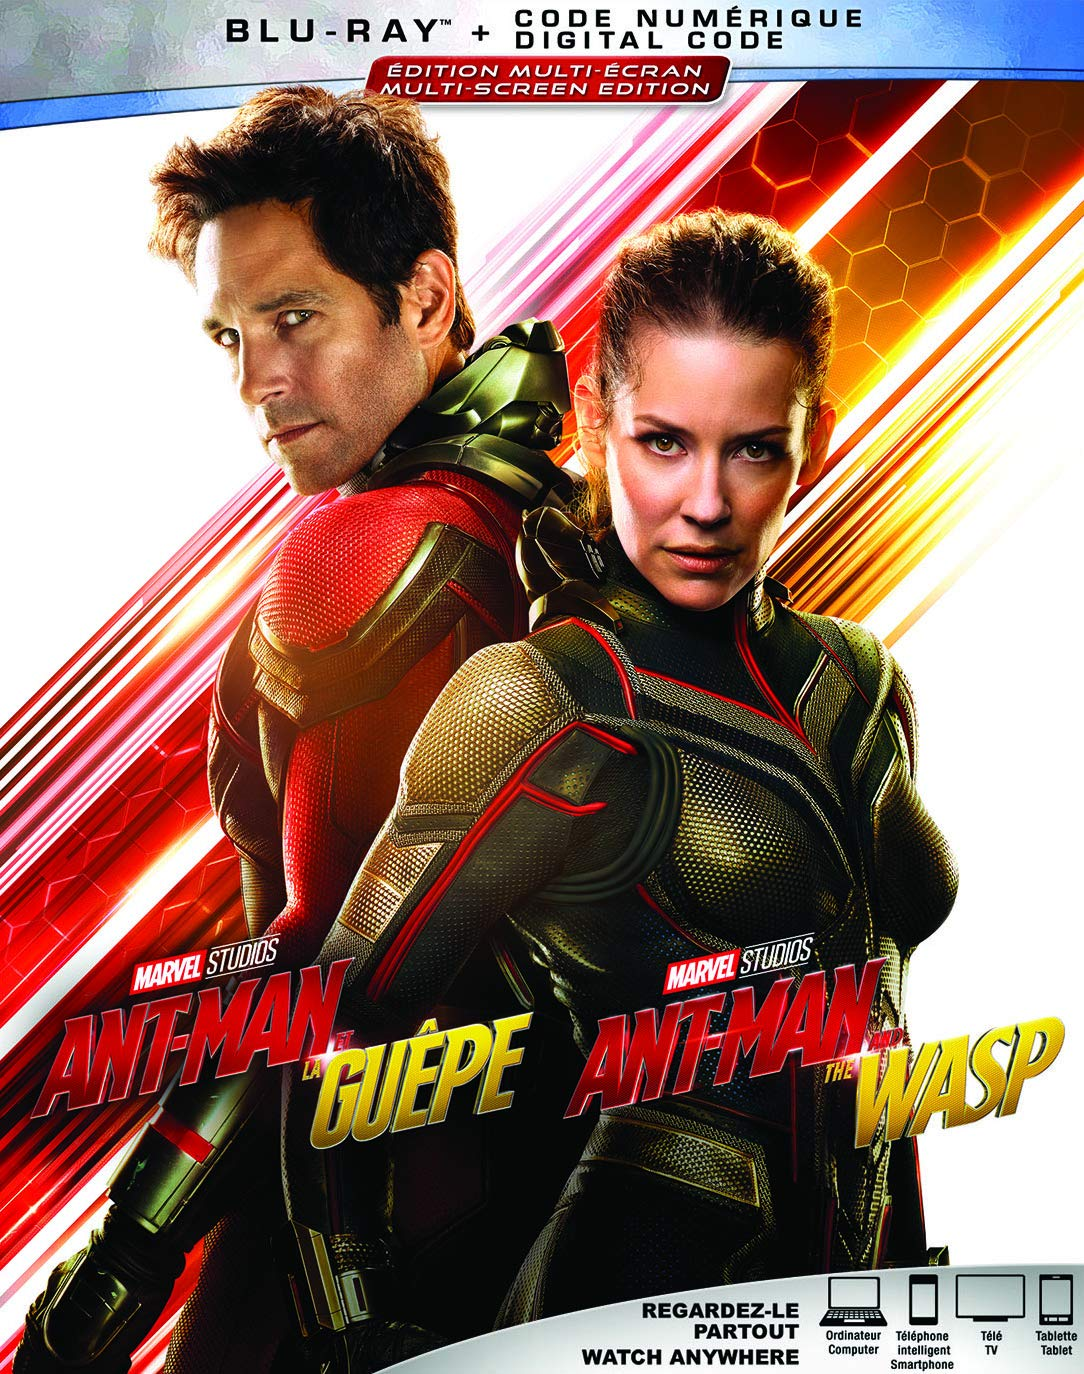 ANT-MAN AND THE WASP [Blu-ray] MARVEL